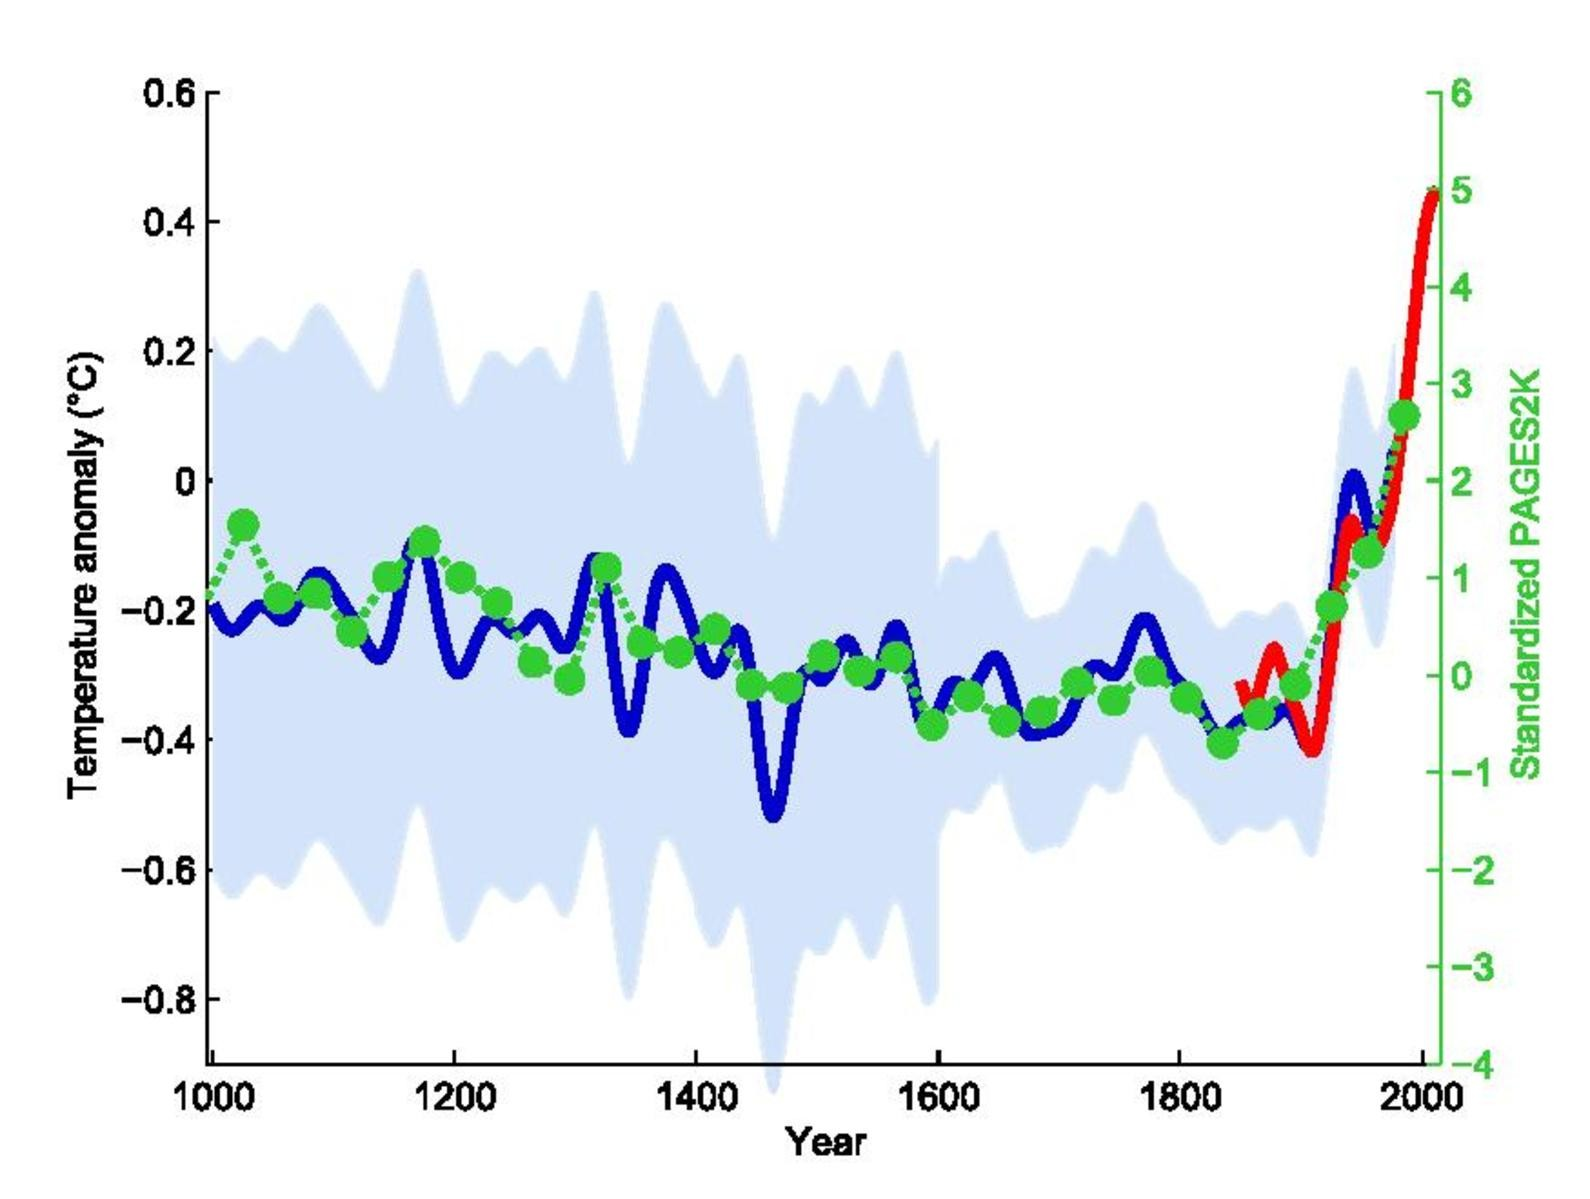 The climate change hockey stick graph